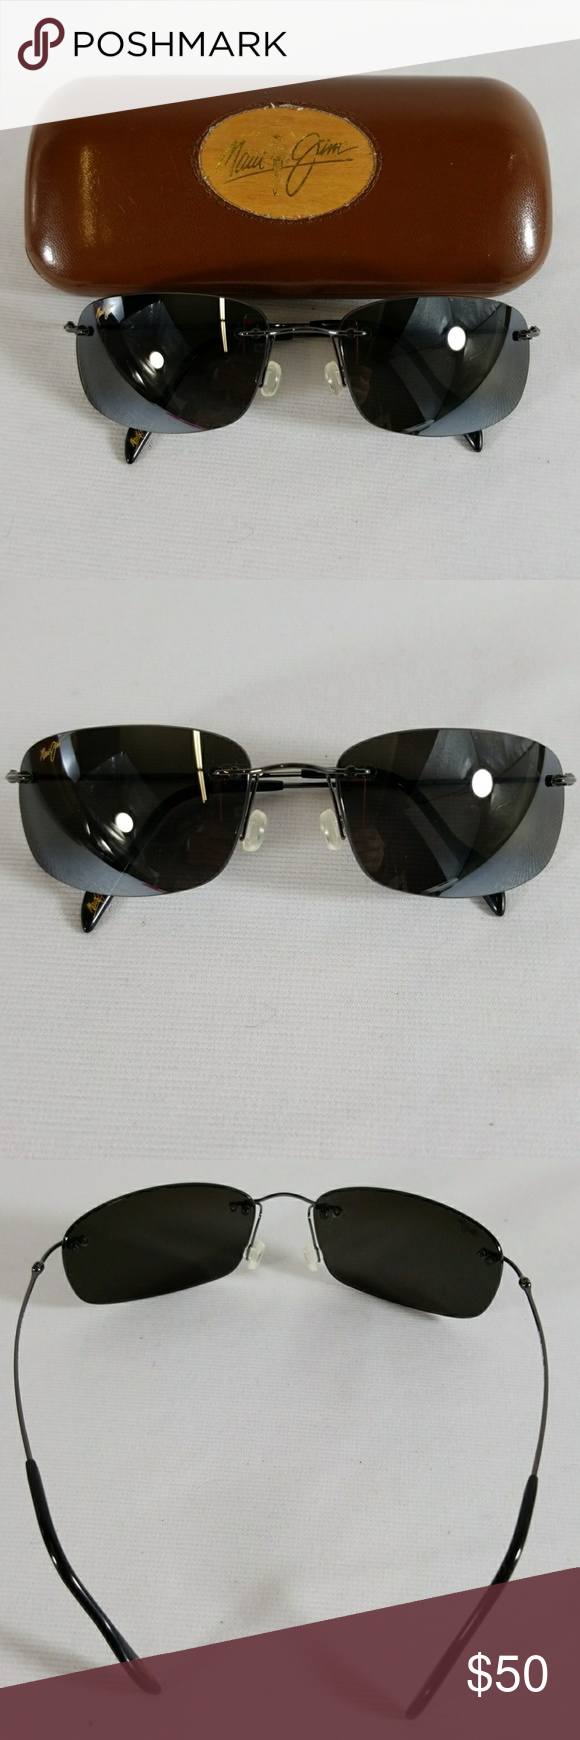 ee6c5a64f1f Maui Jim black sunglasses with brown case Mavi Jim black frameless  sunglasses with brown case. MJ-311-02. A minor crack inside the case as  seen on picture.